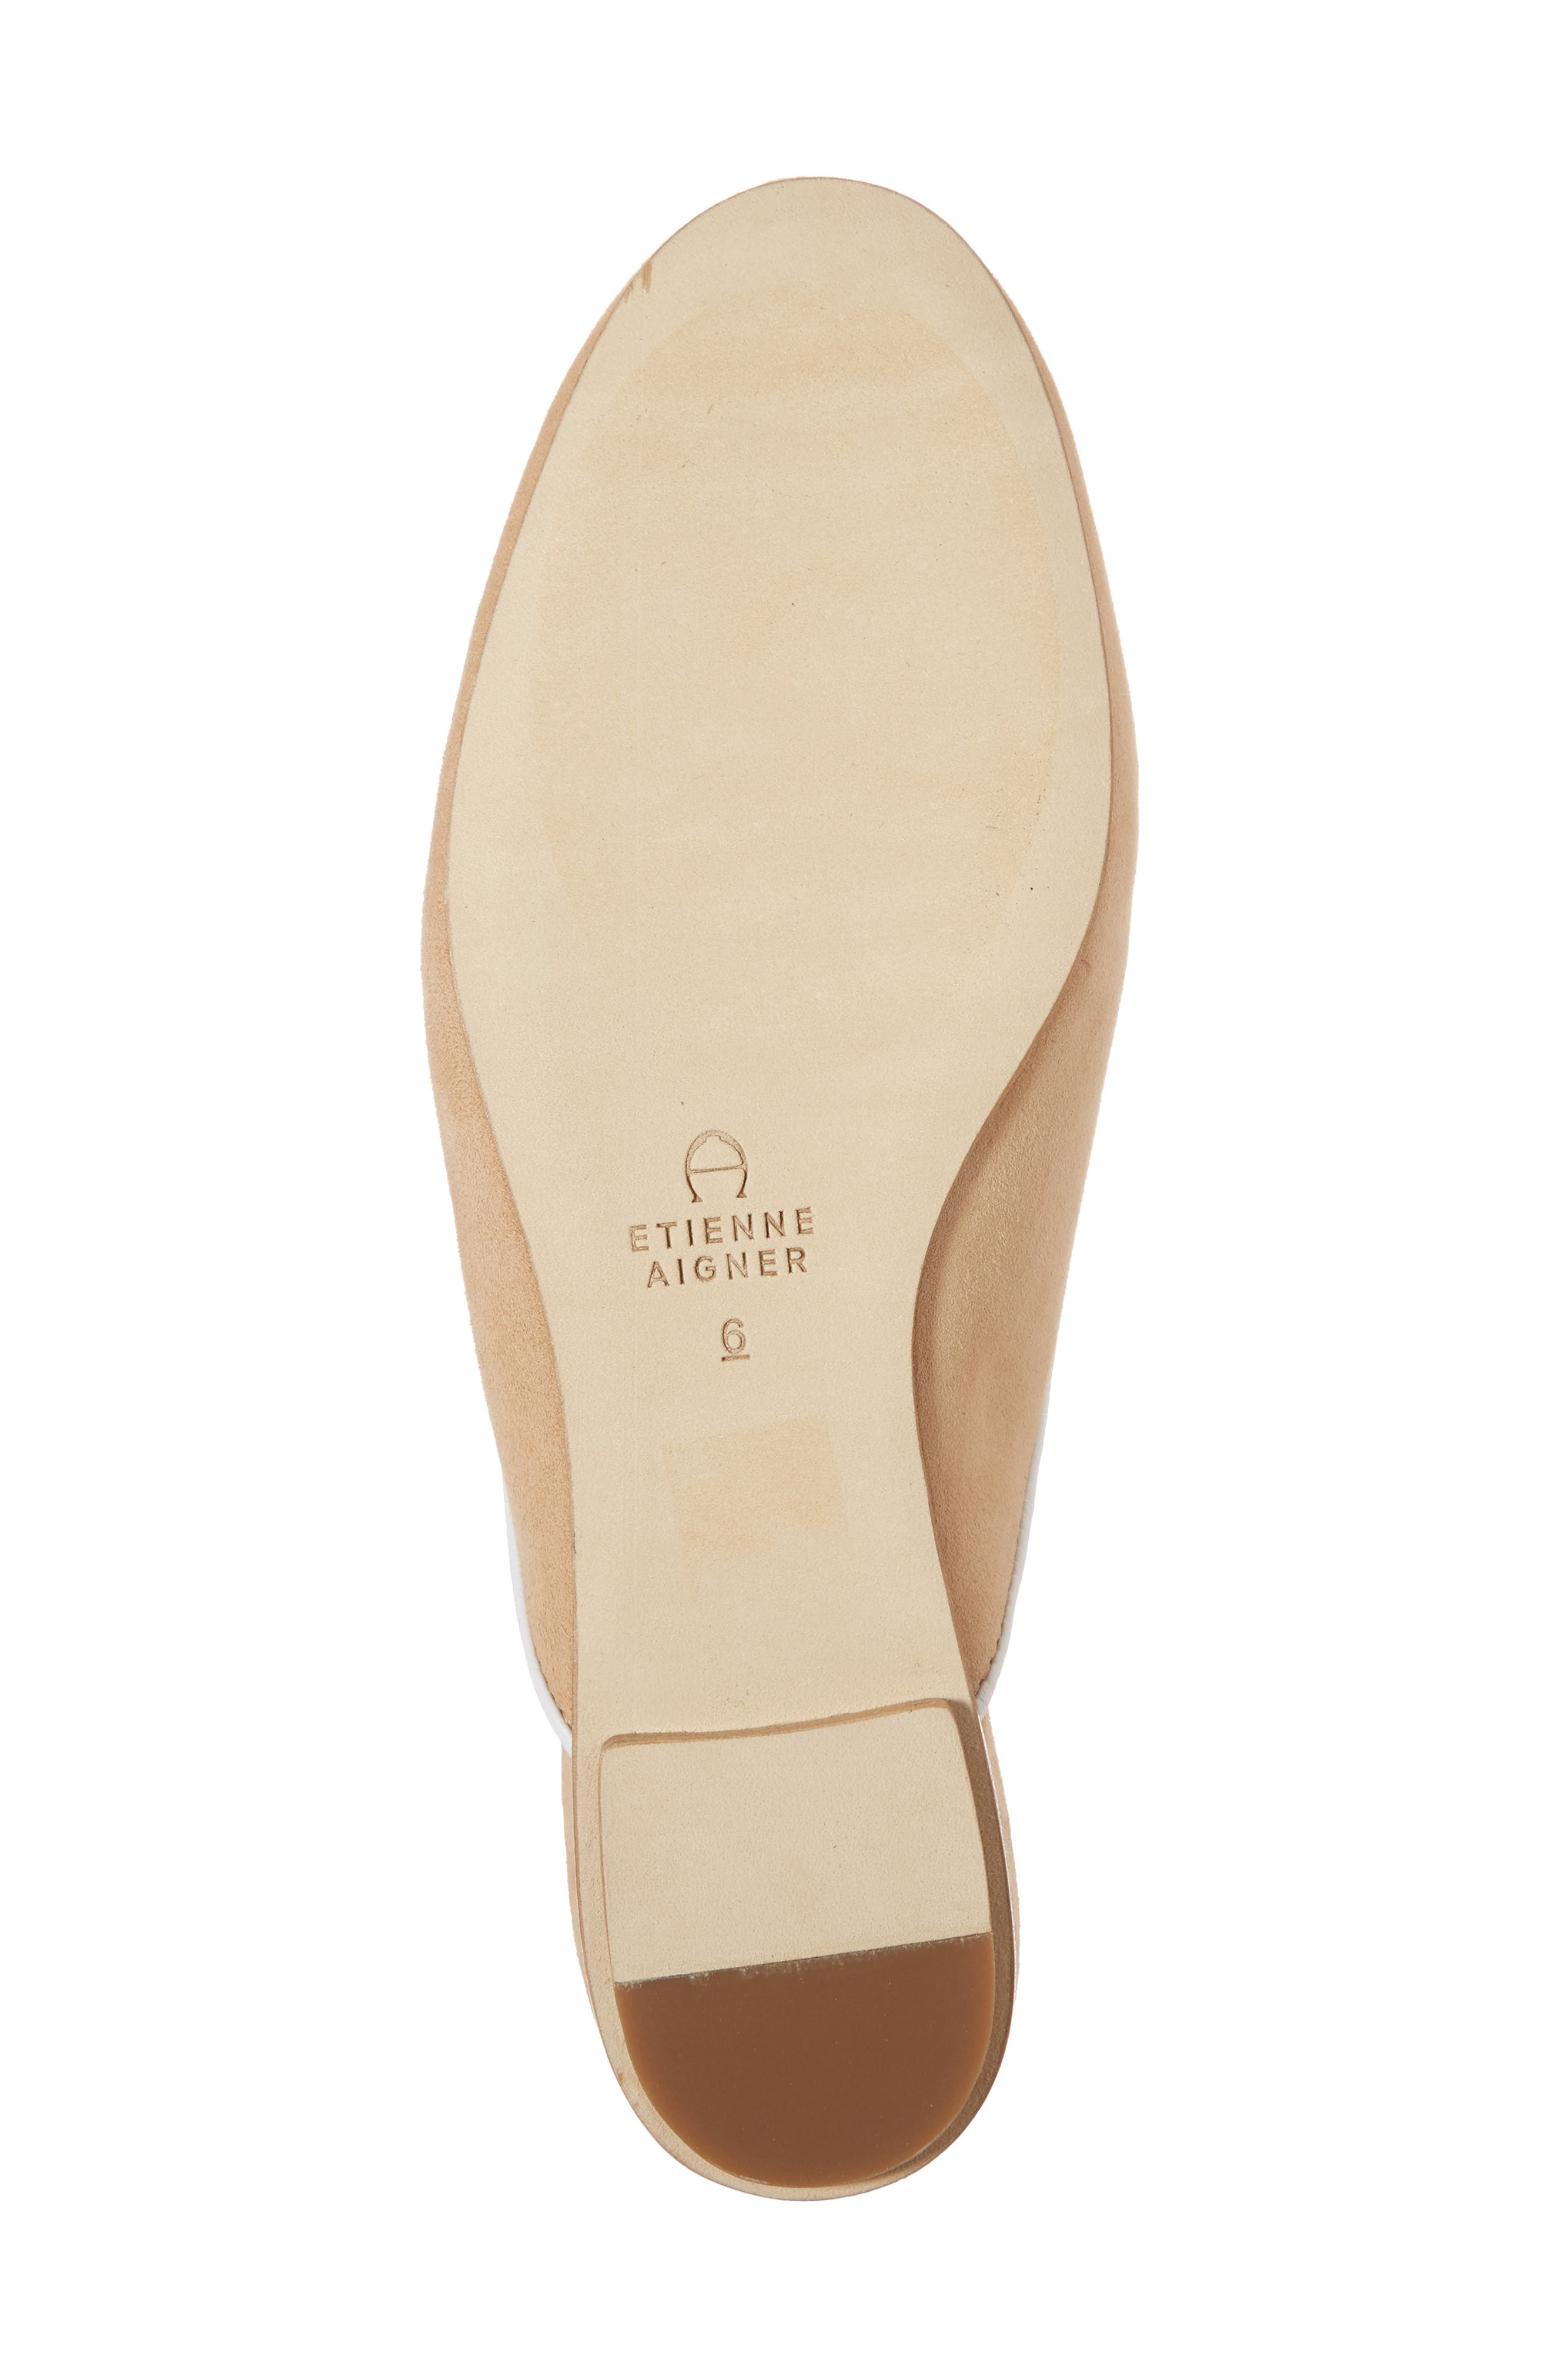 Caymen Mule,                             Alternate thumbnail 6, color,                             NATURAL/ FAWN/ WHITE